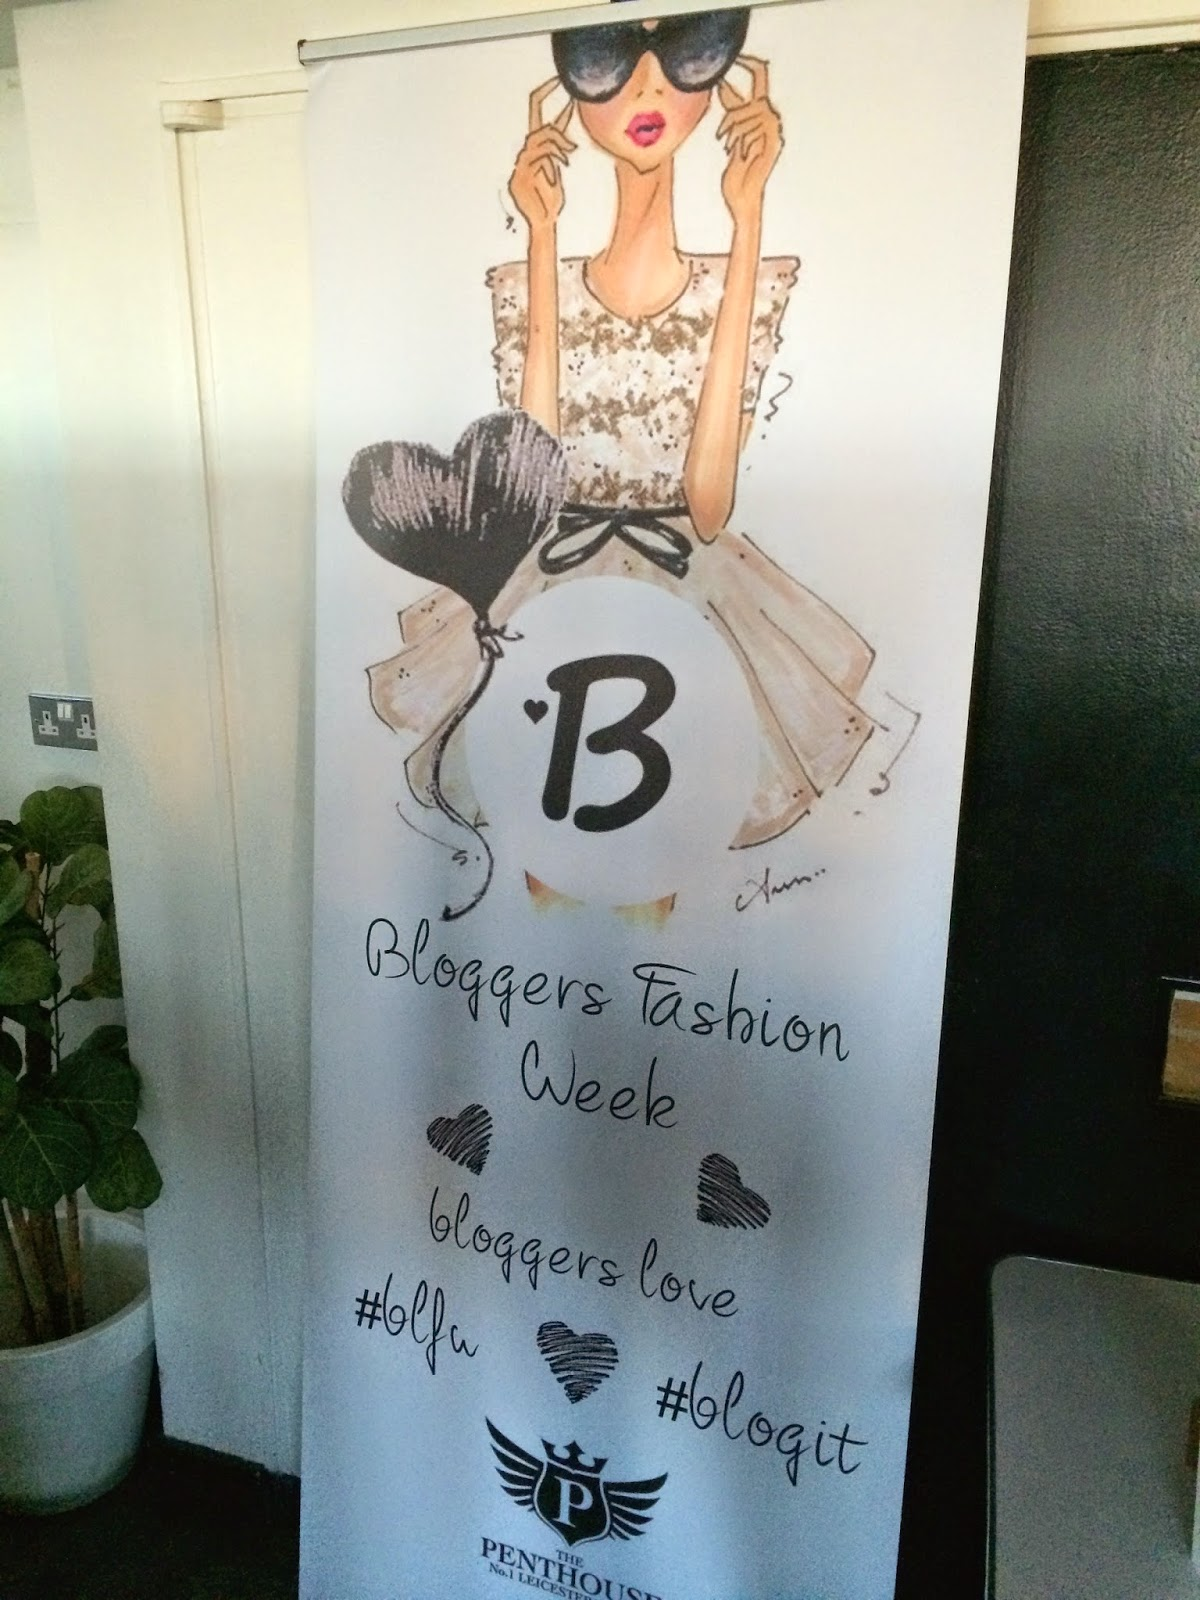 bloggers-love-fashion-week-2014